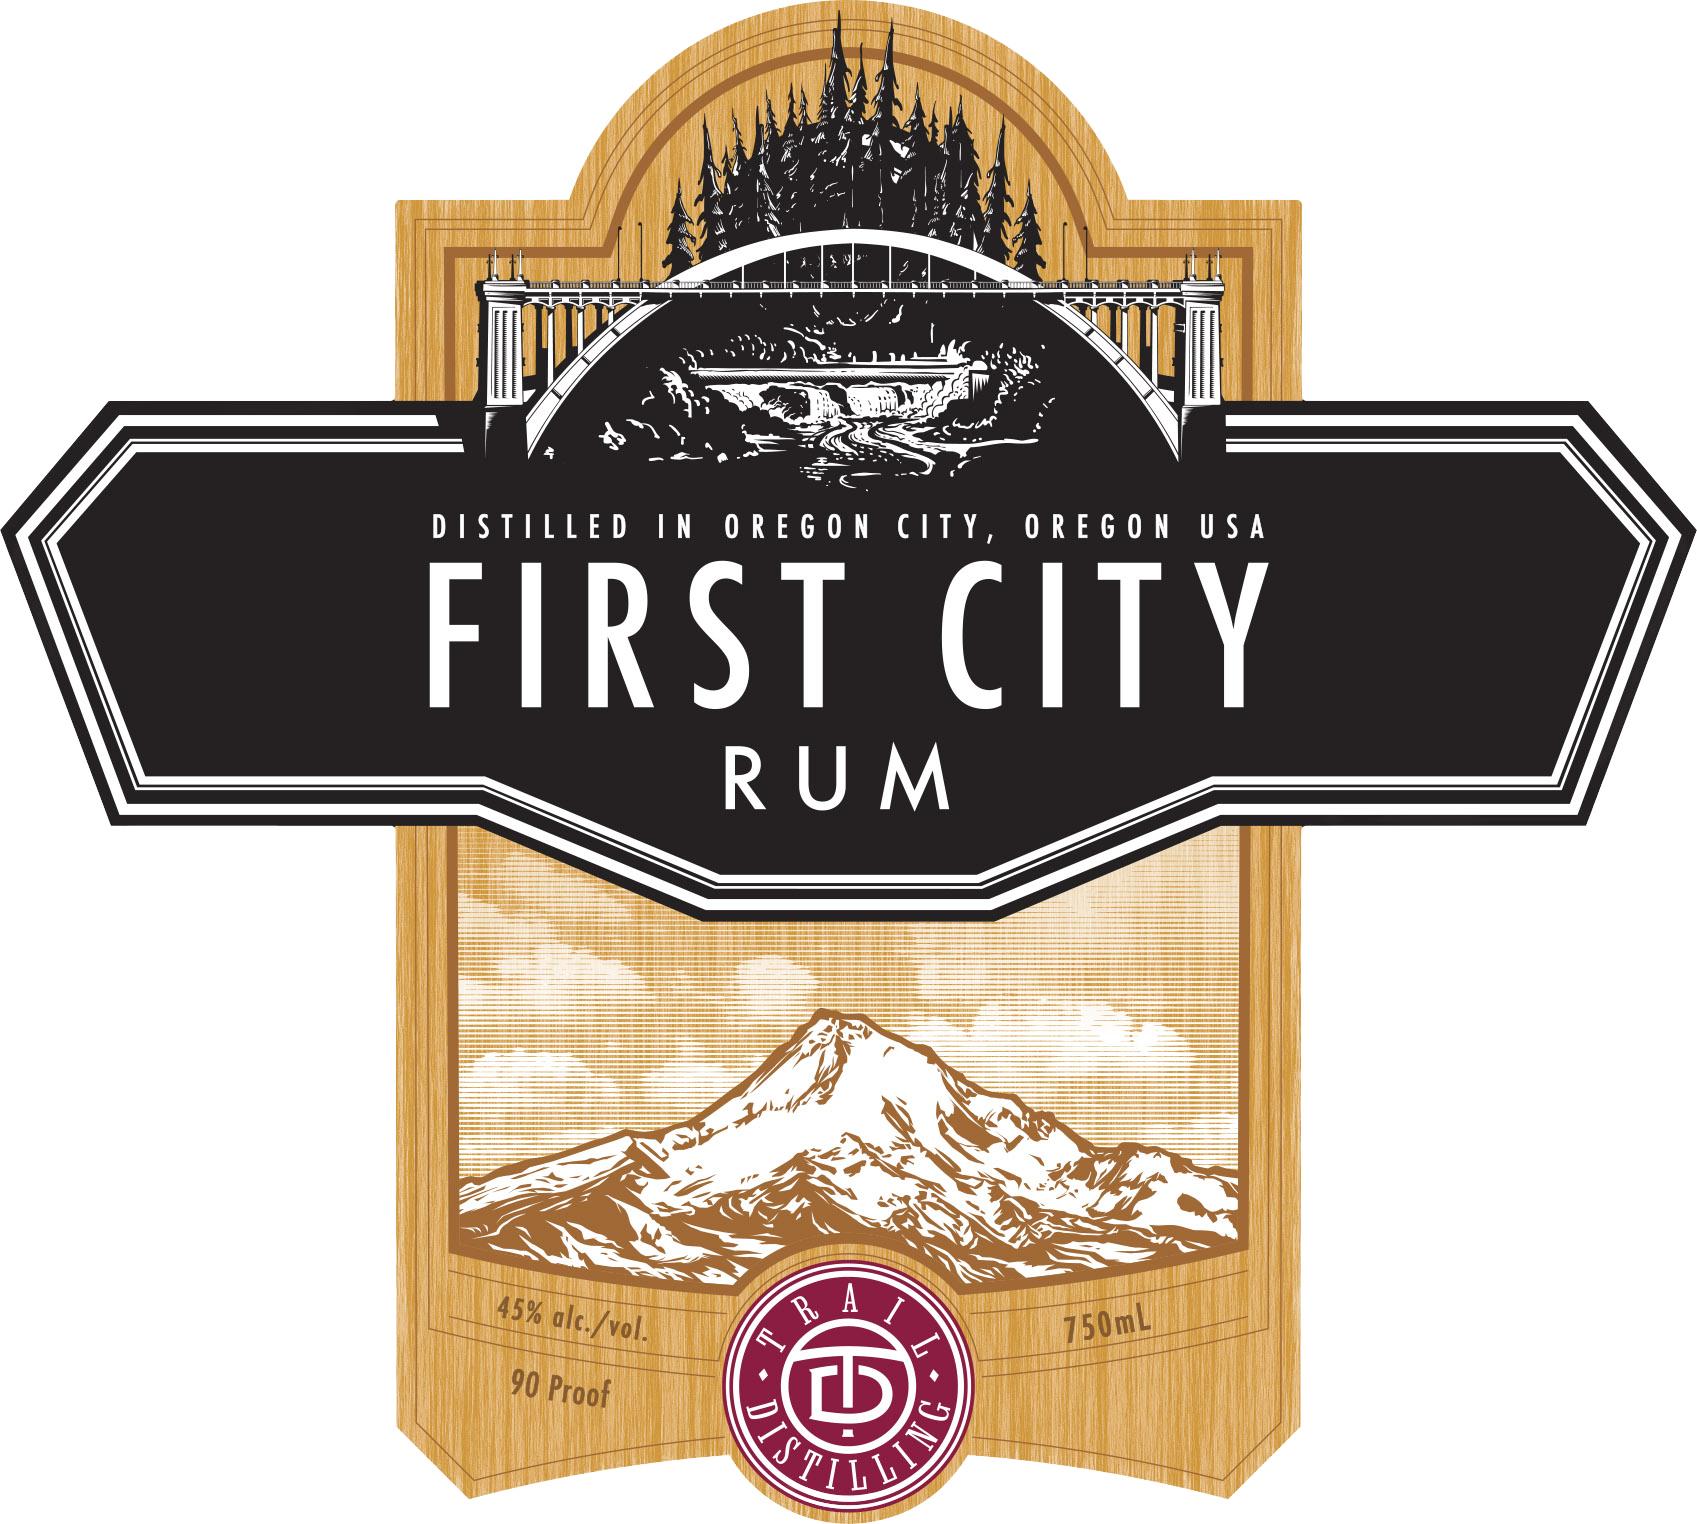 First City Rum